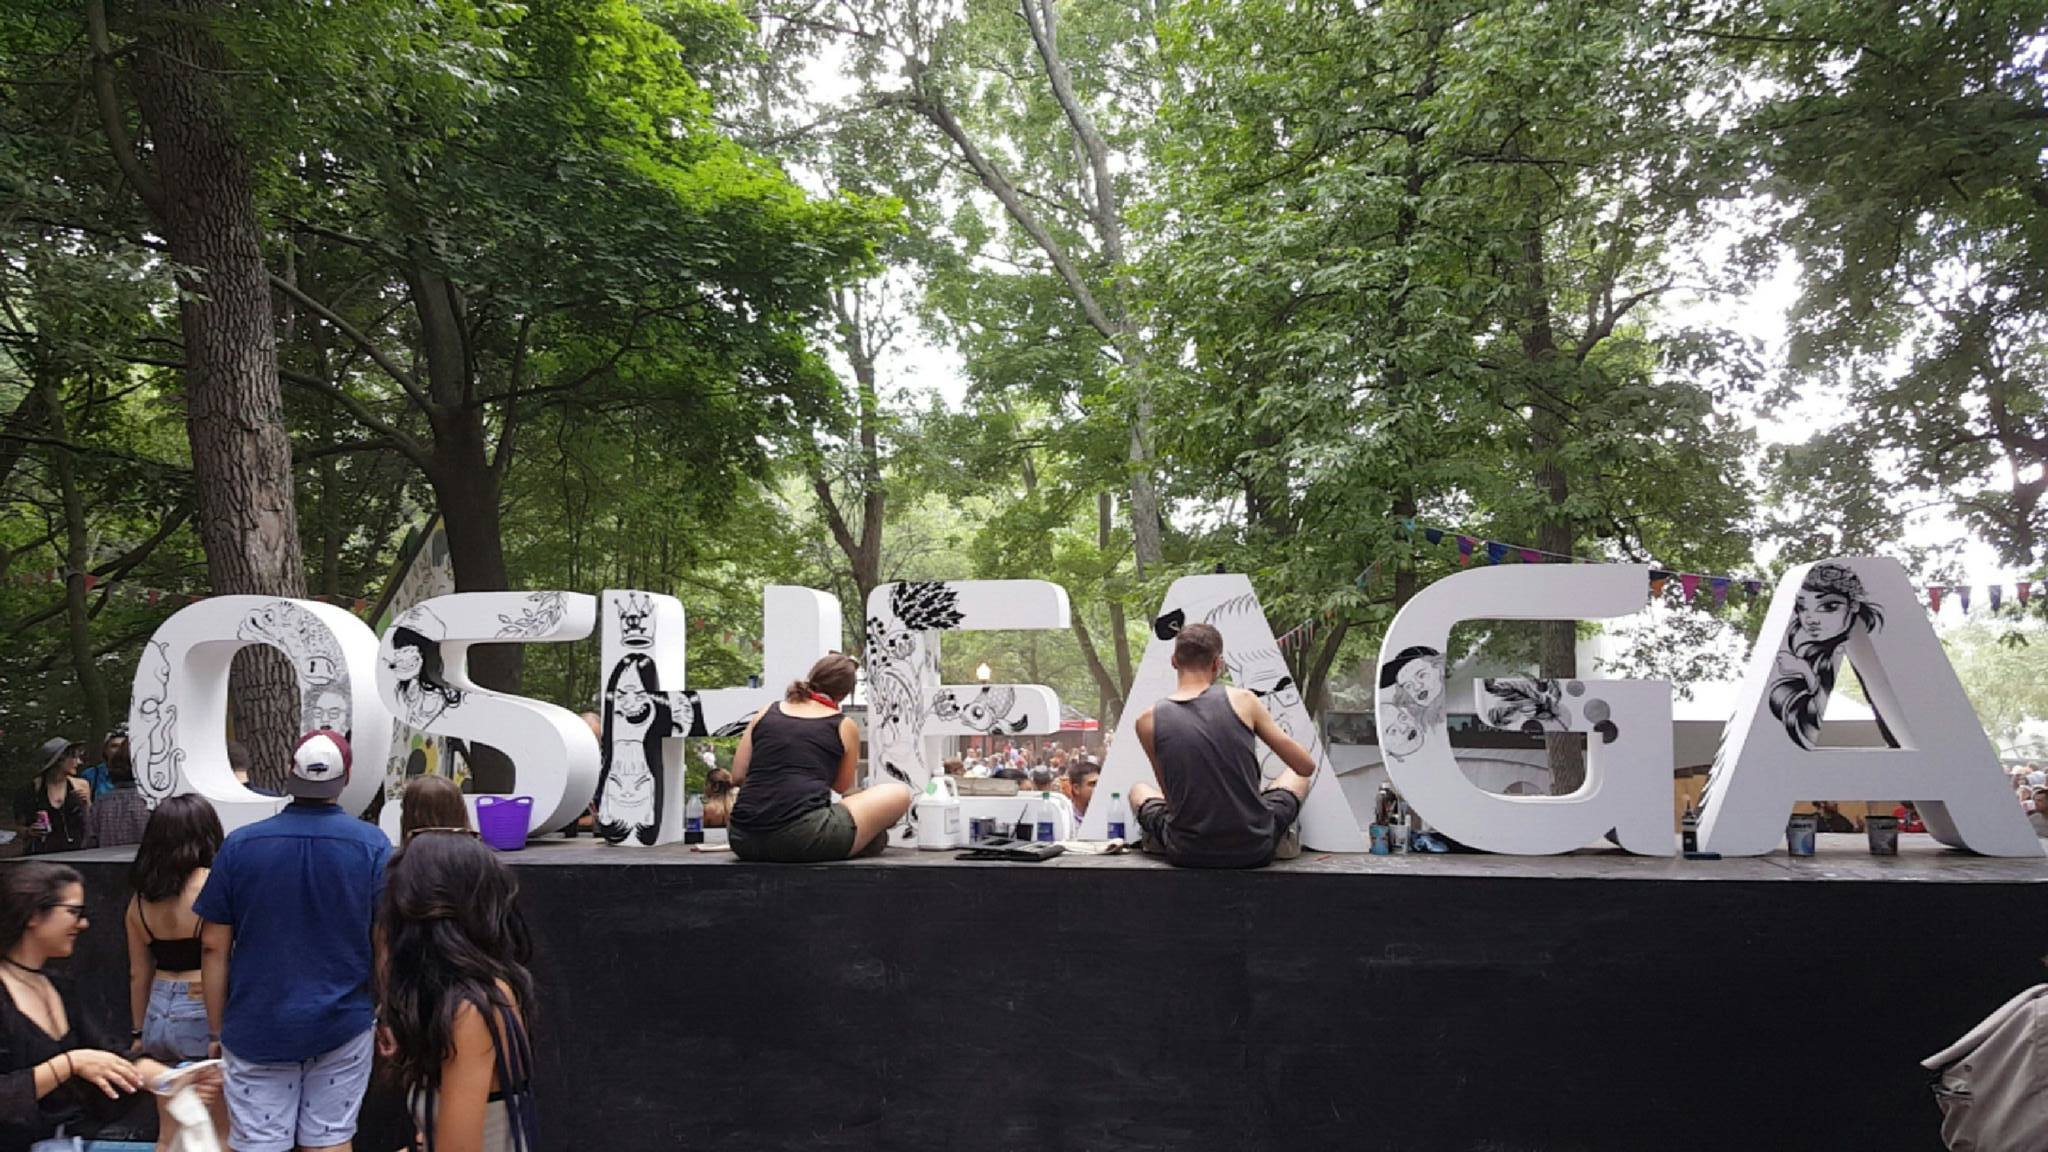 Captured: Osheaga Festival (Photo Gallery)